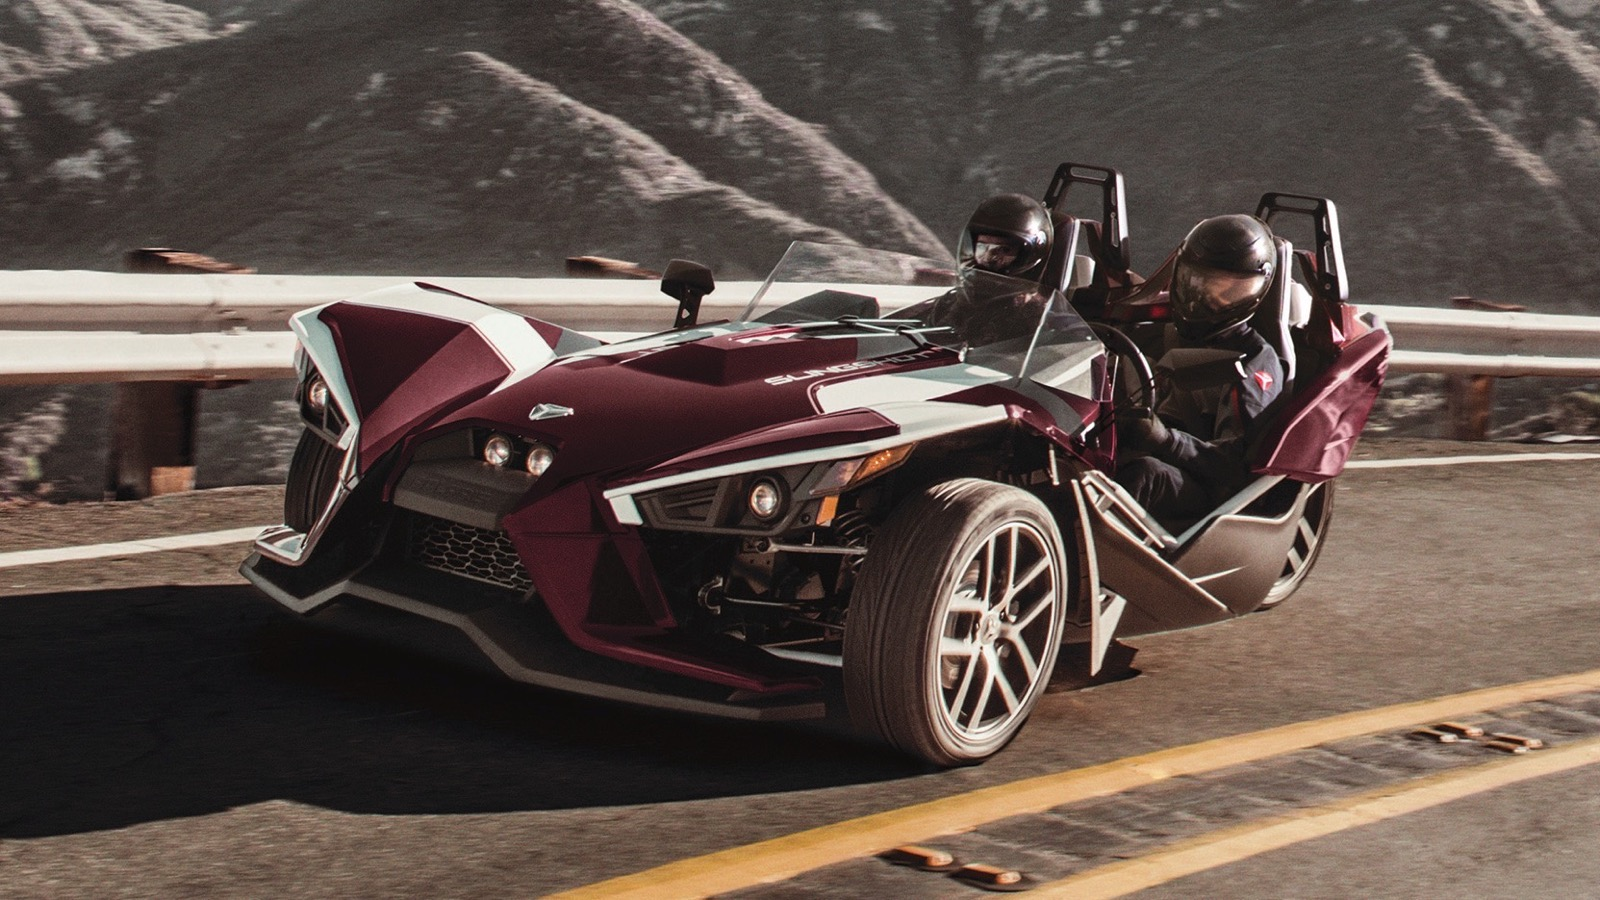 2017_Polaris_Slingshot_SL_LE_Midnight_Cherry_edition_02